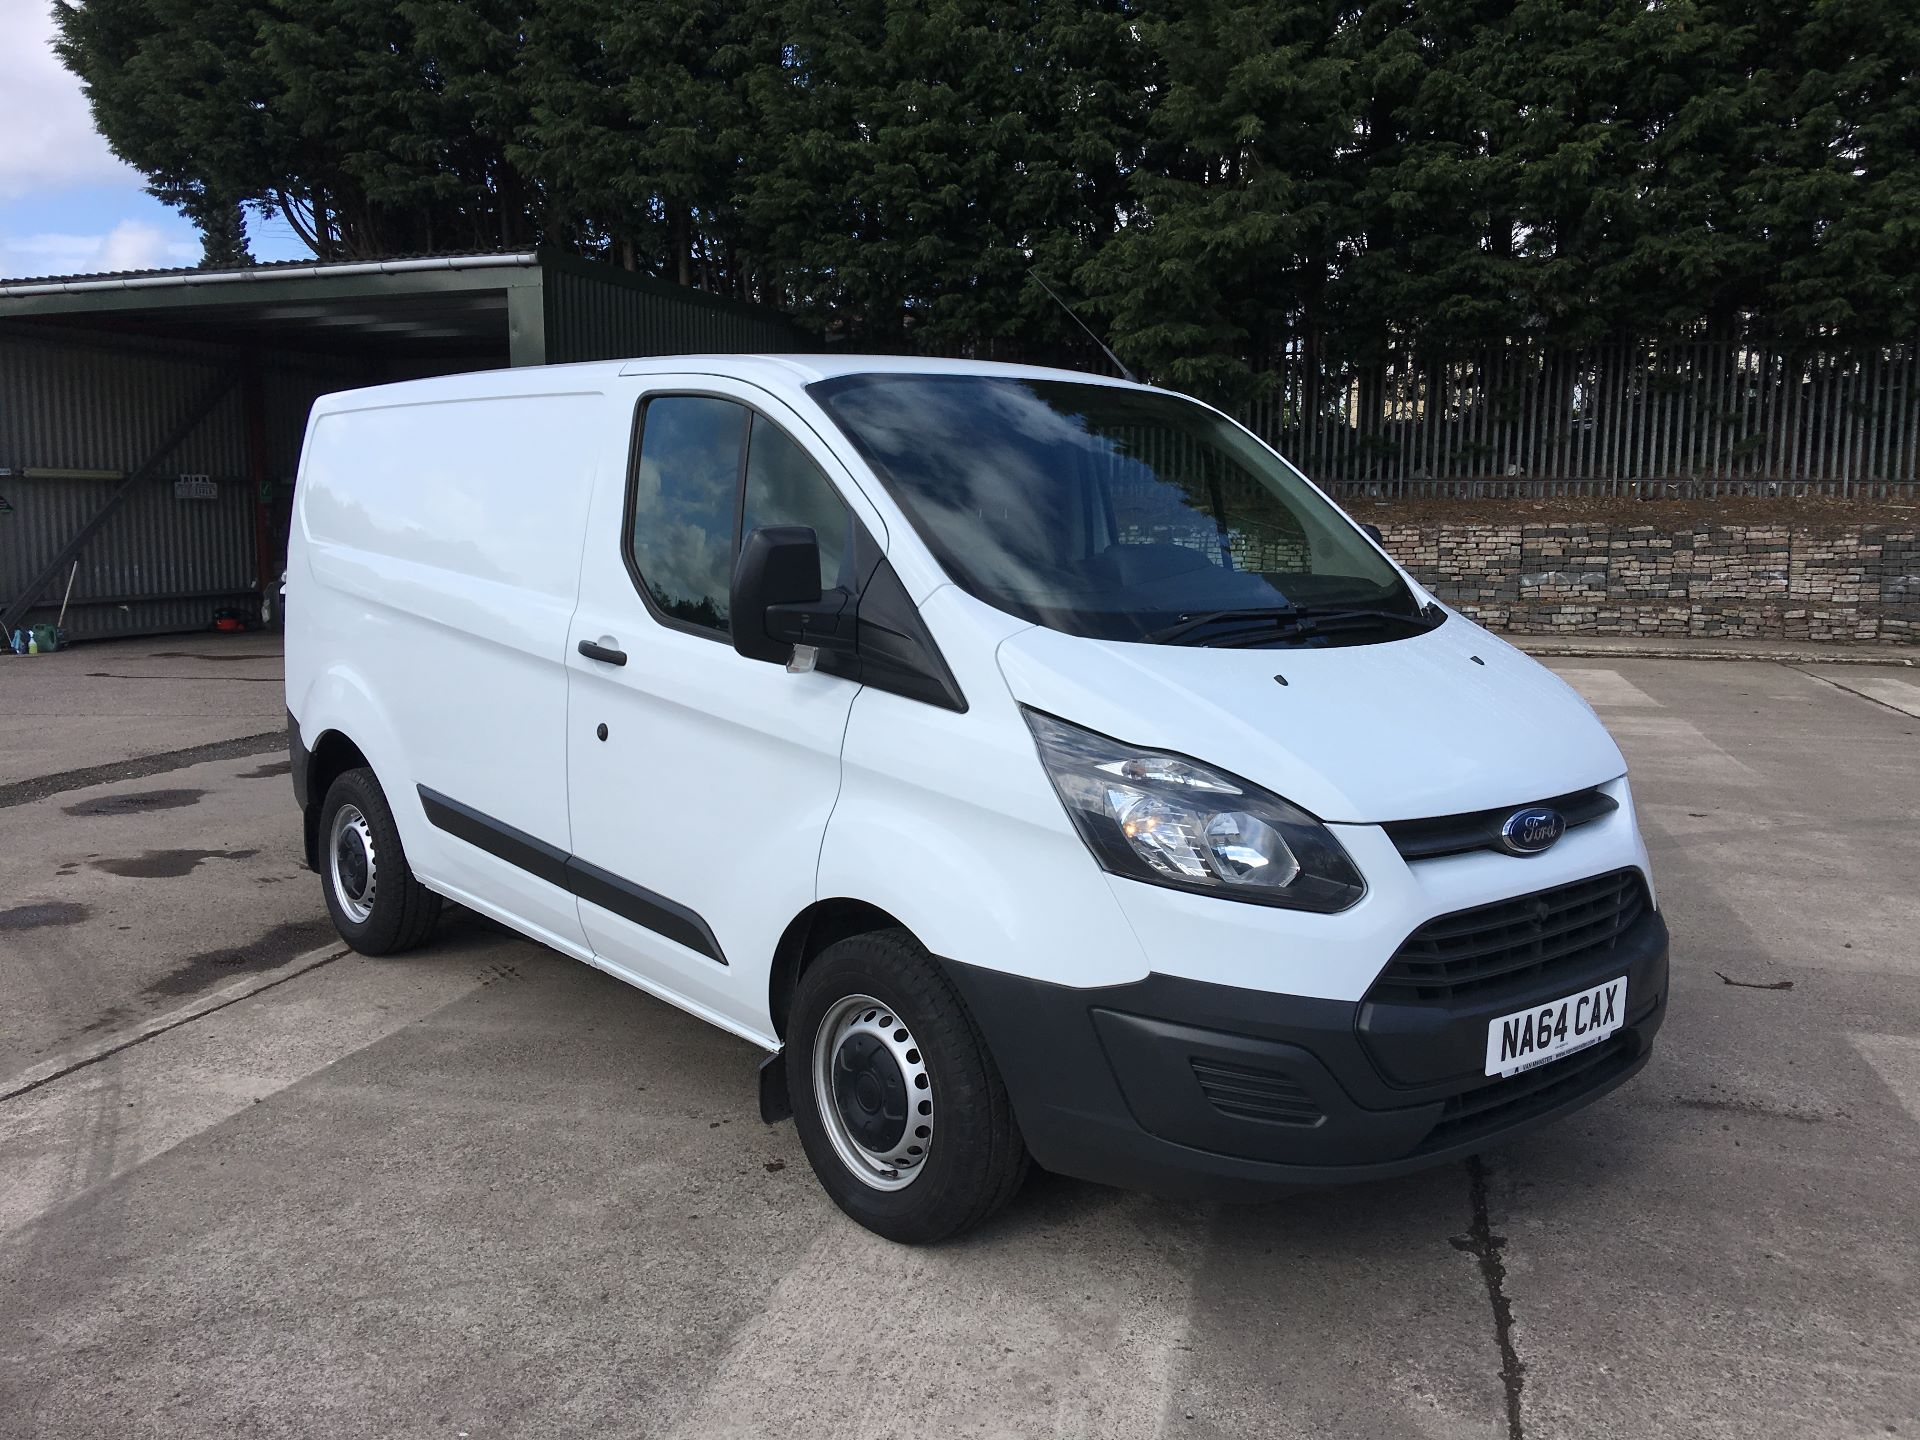 2014 Ford Transit Custom 290 L1 DIESEL FWD 2.2 TDCI 100PS LOW ROOF VAN EURO 5 (NA64CAX)